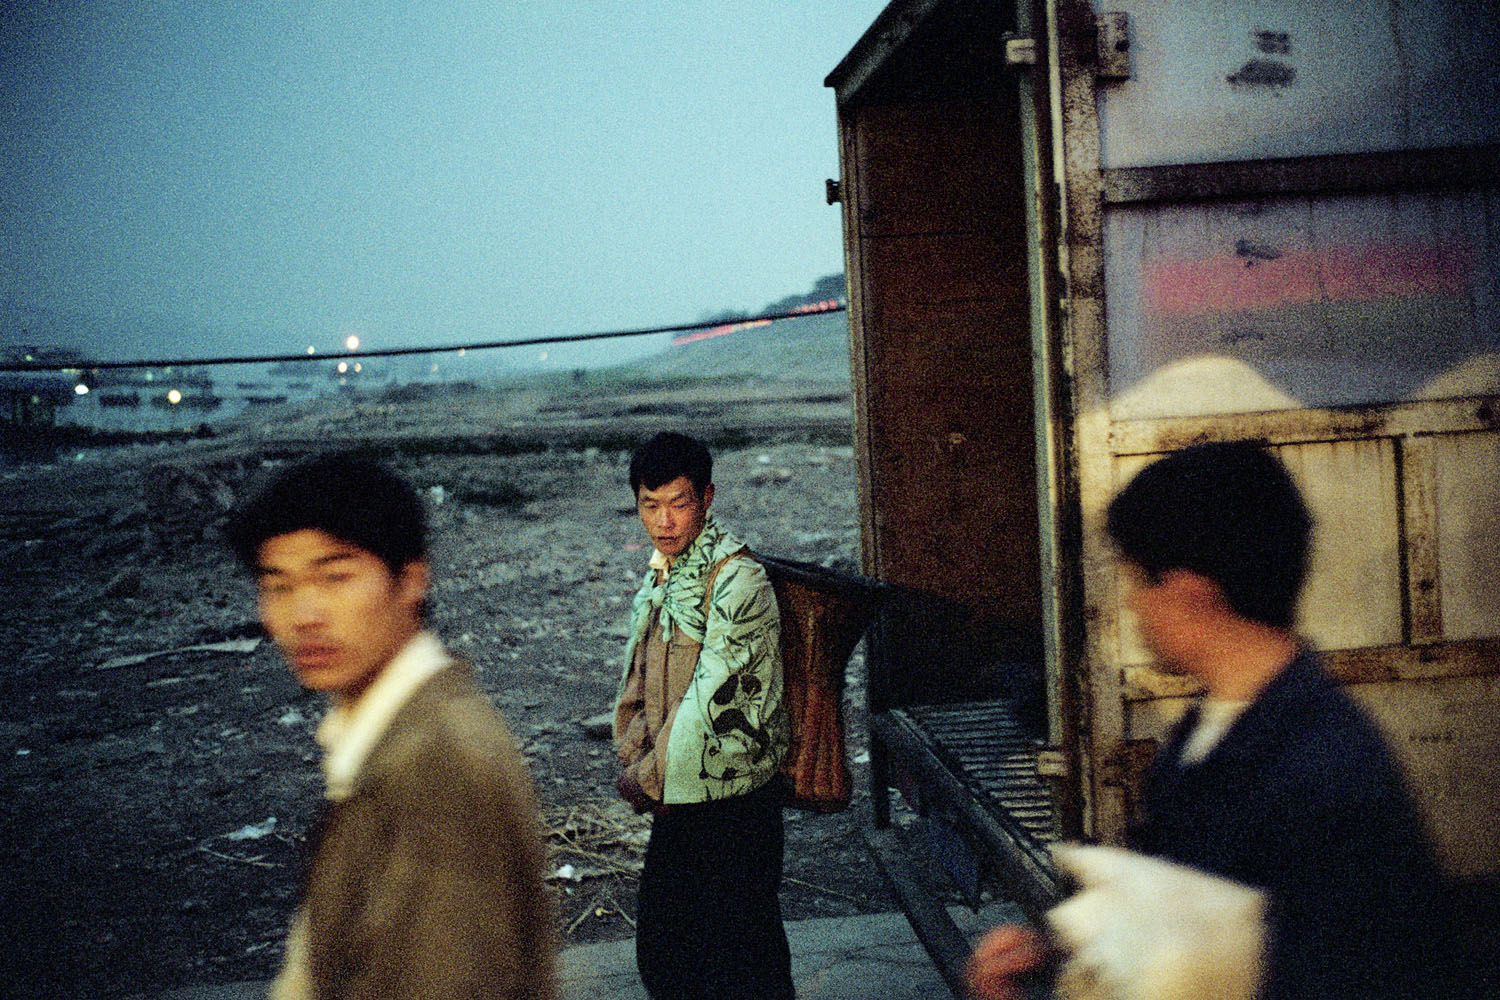 Migrant workers stand in front of a truck at night. Yichang, China. July 2001.